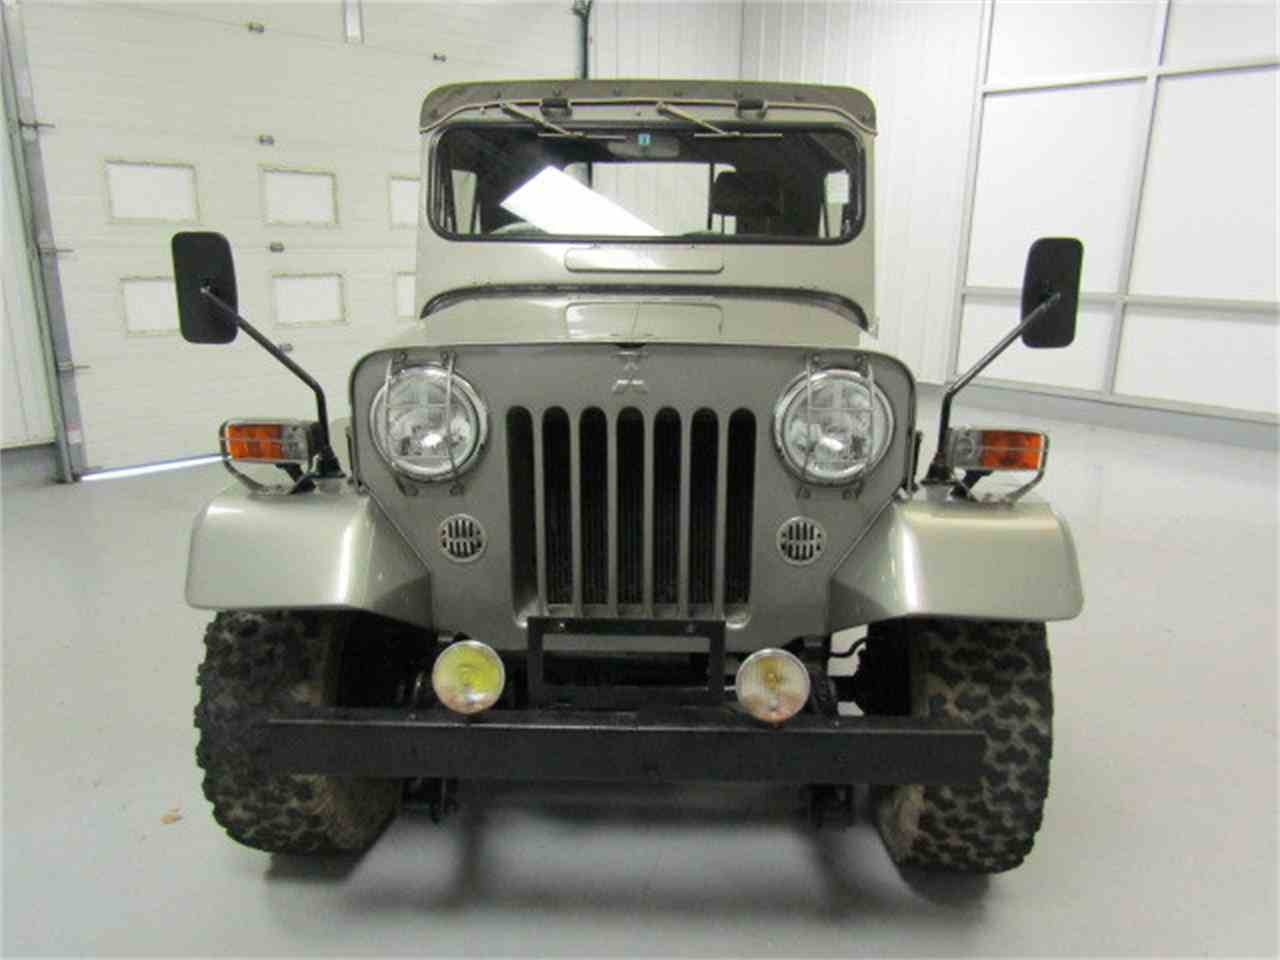 Large Picture of 1979 Mitsubishi Jeep located in Christiansburg Virginia - $10,999.00 - JM3M